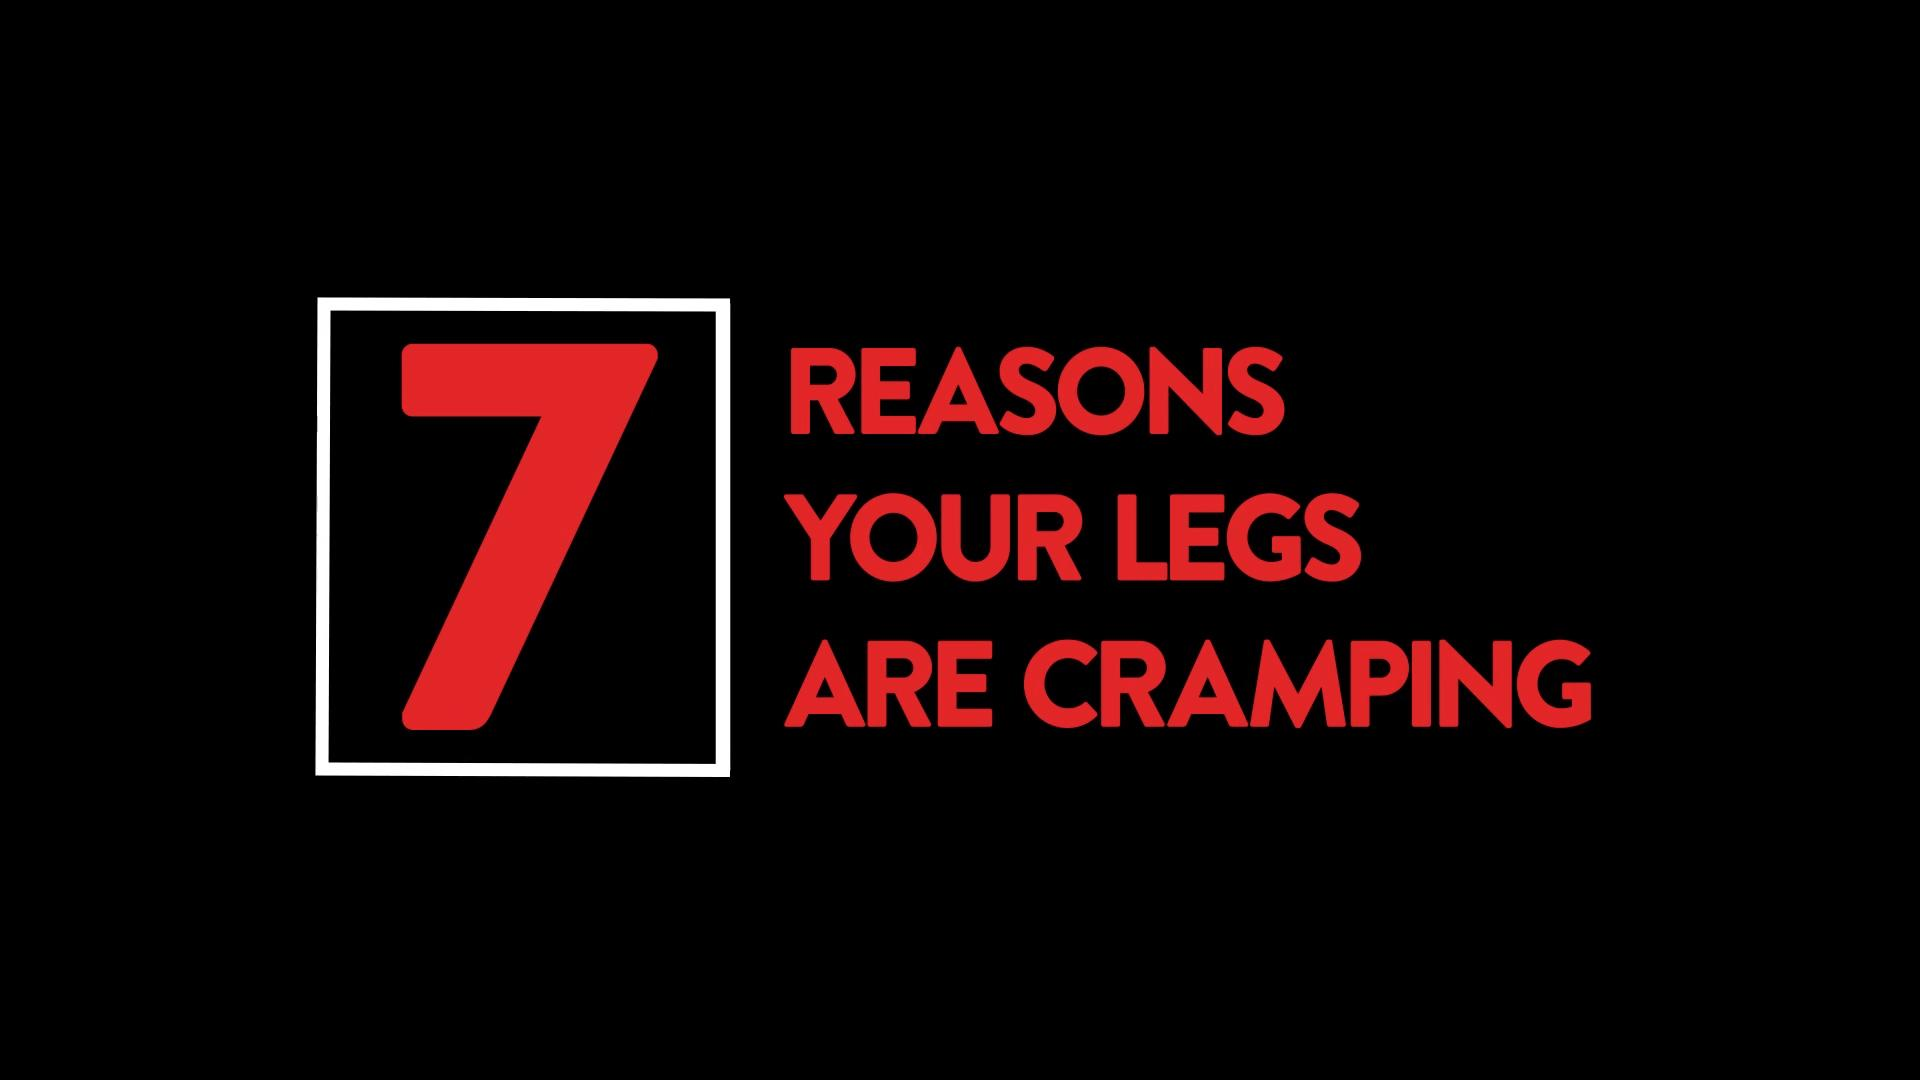 What are leg cramps?